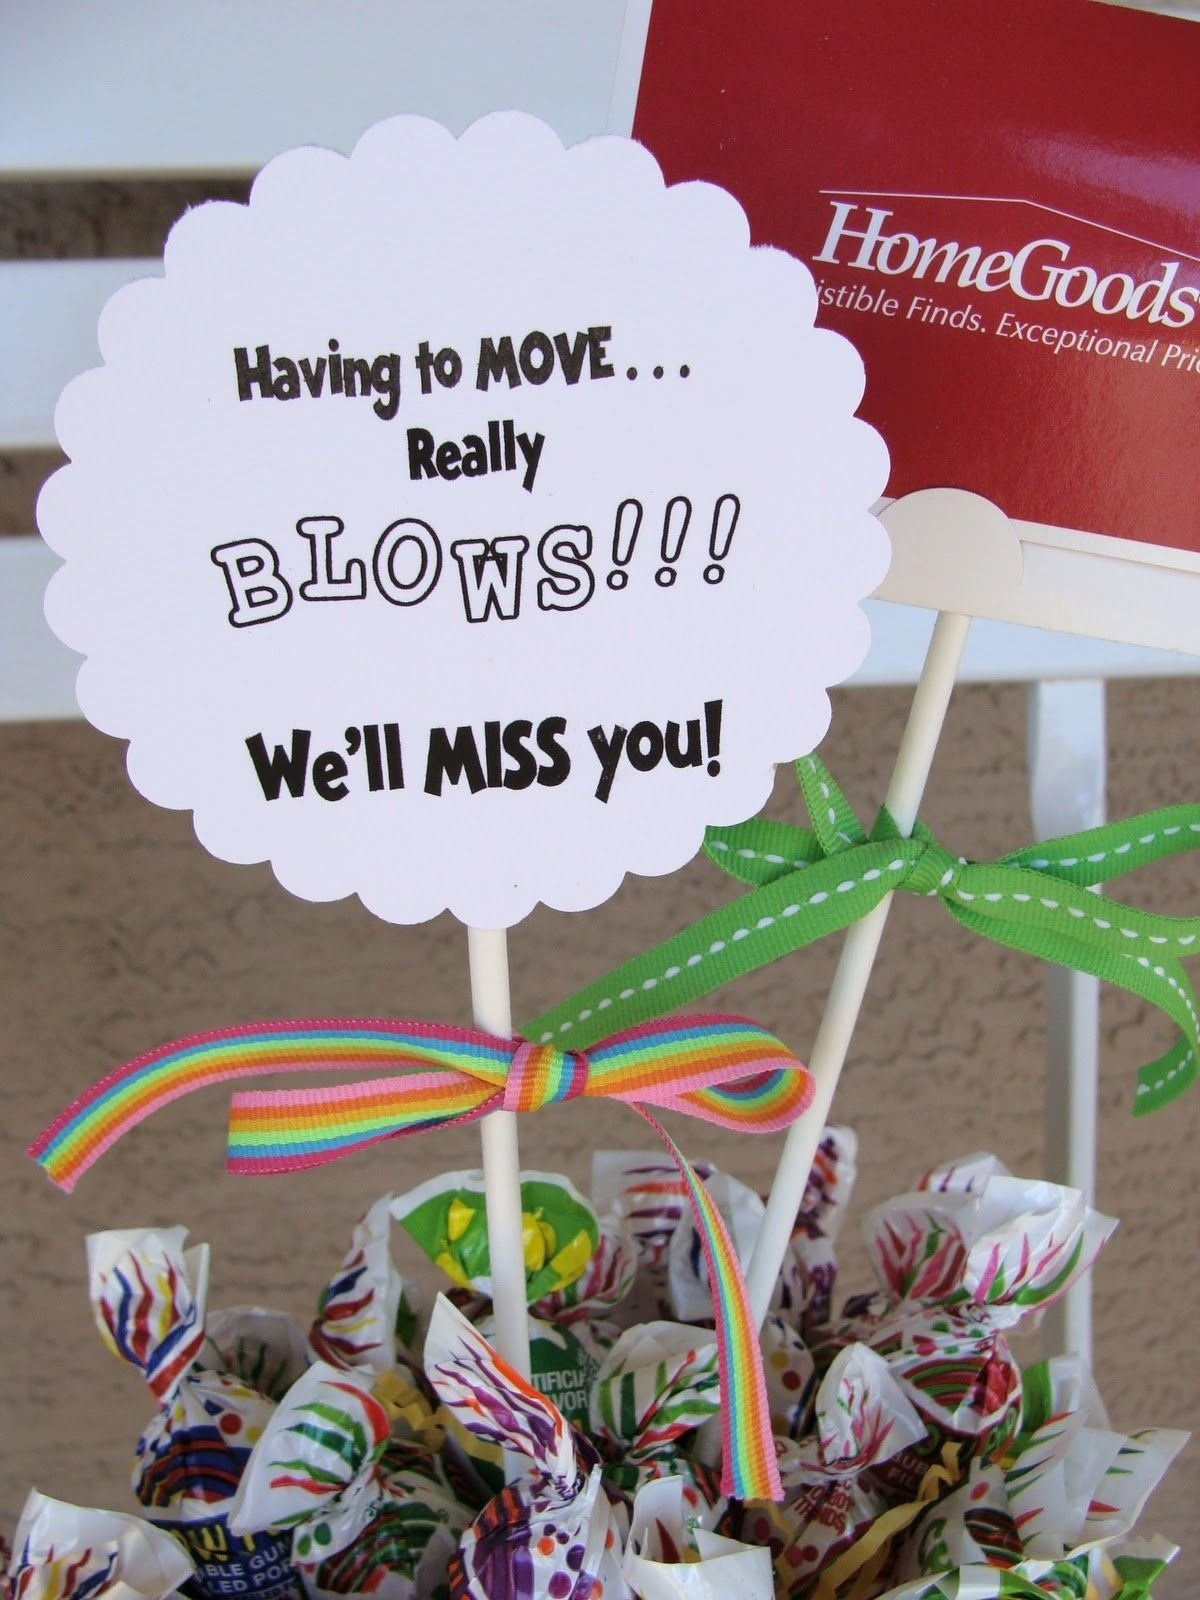 10 Awesome Ideas For A Going Away Party marci coombs going away gift idea party ideas pinterest gift 1 2020